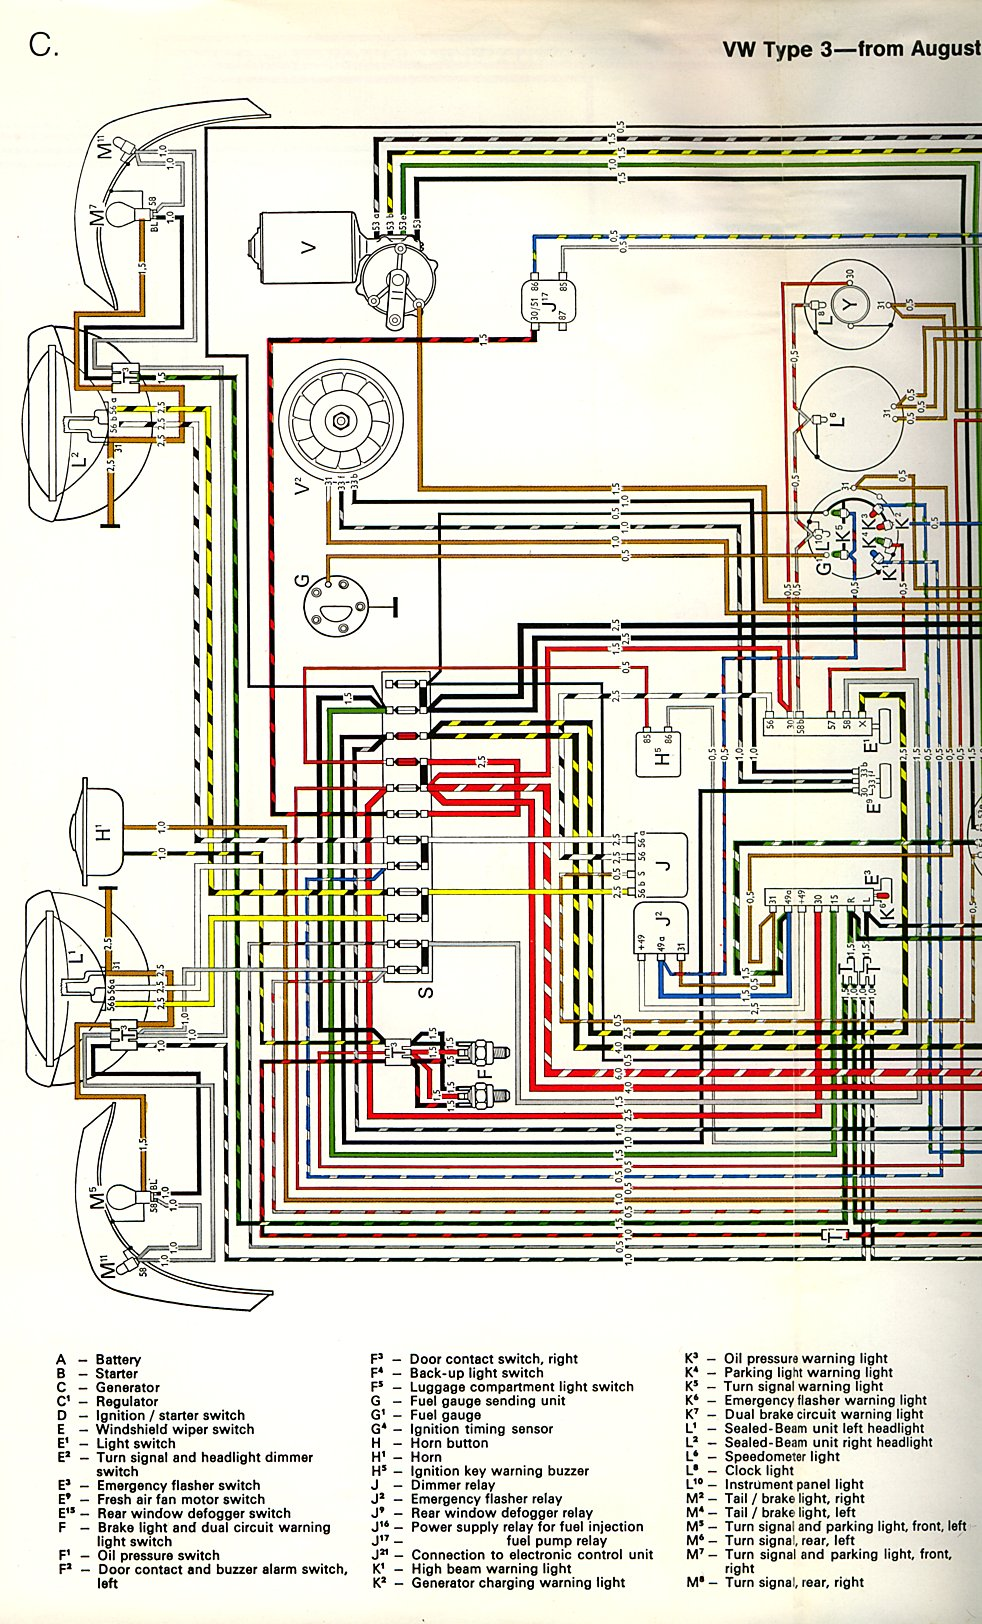 1974 Vw Thing Wiring Diagram Just Another Blog 74 Volkswagen Images Gallery